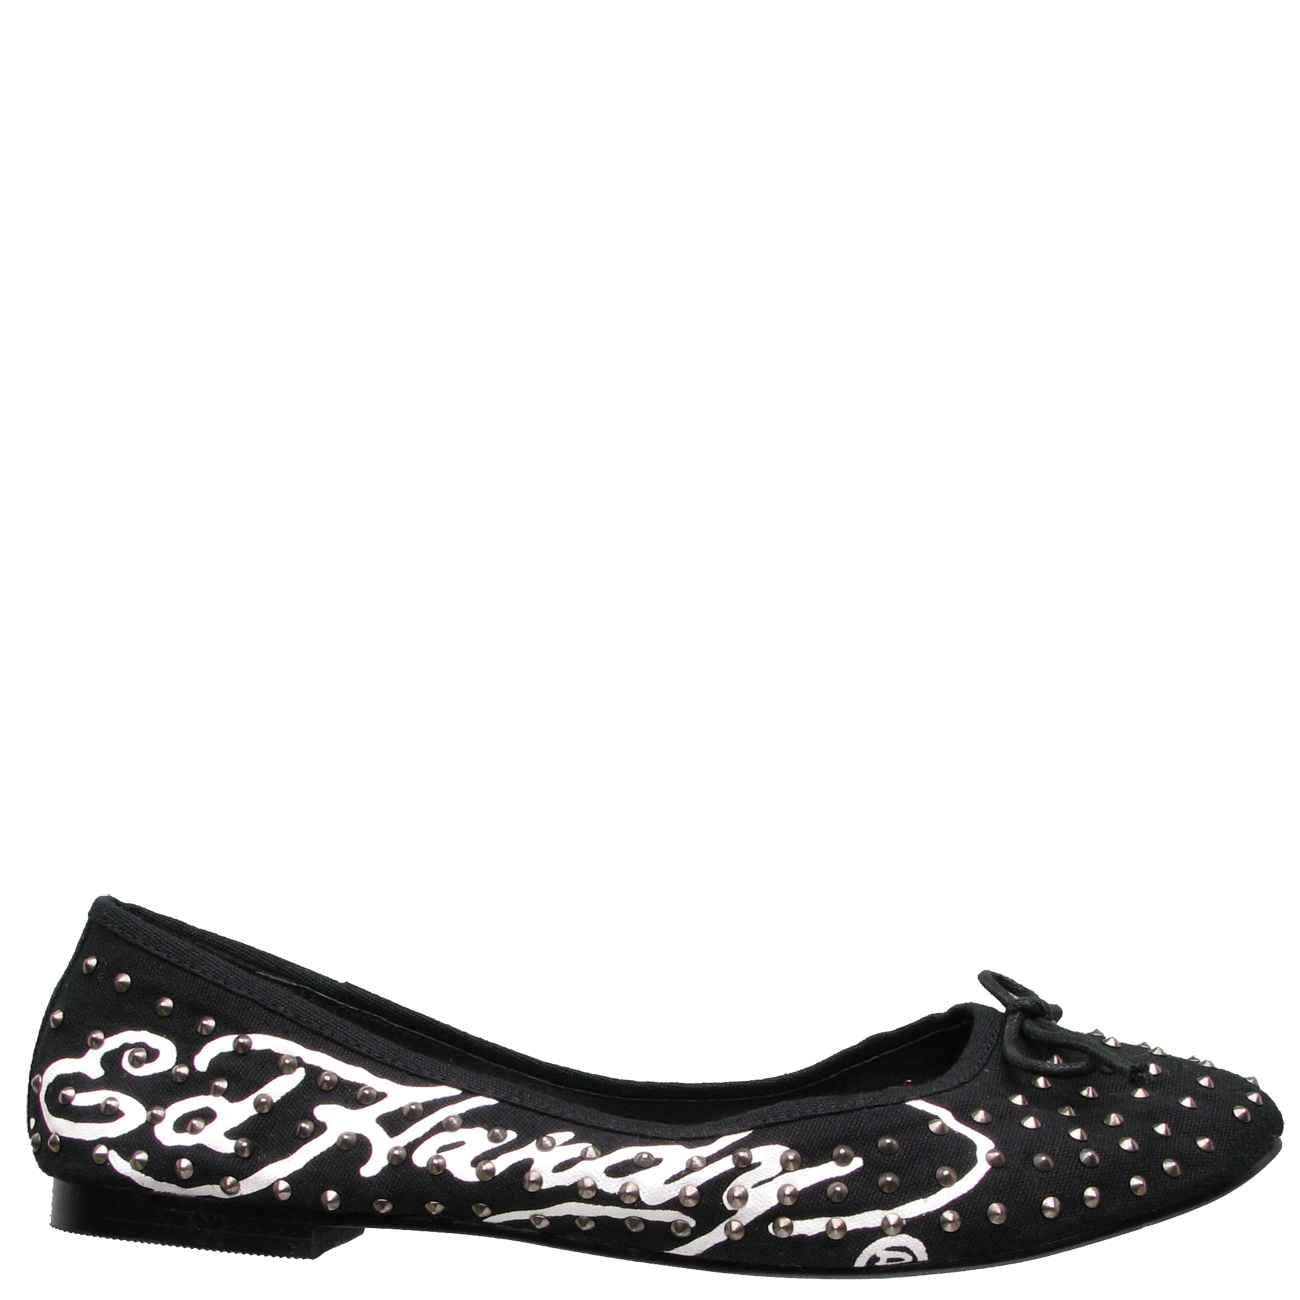 Ed Hardy Oui Oui Studded Ballet Flat Shoe for Women - Black